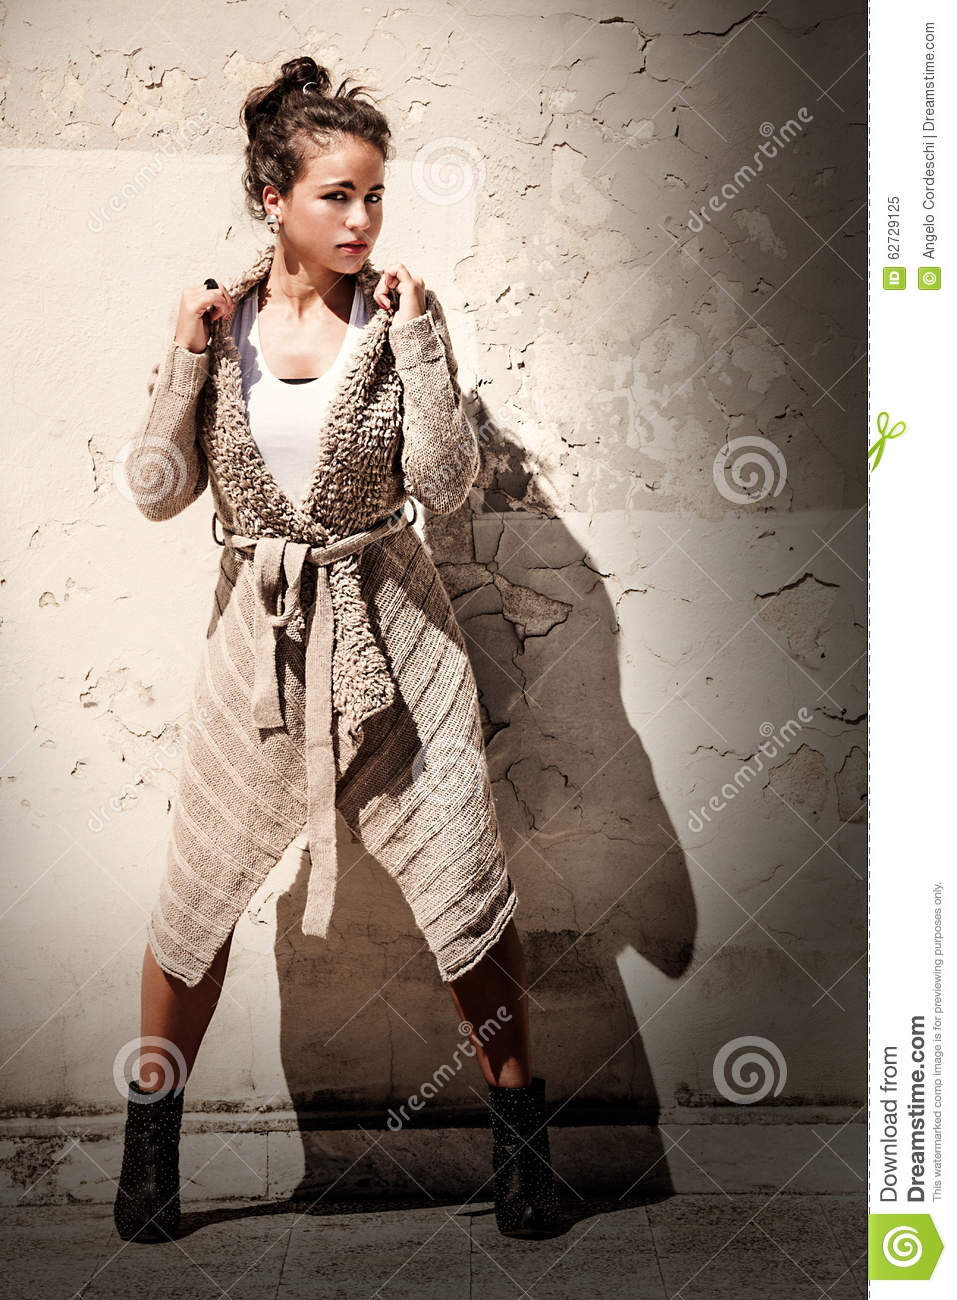 Model Woman Grunge Background Leg Outstretched Wool Sweater Stock